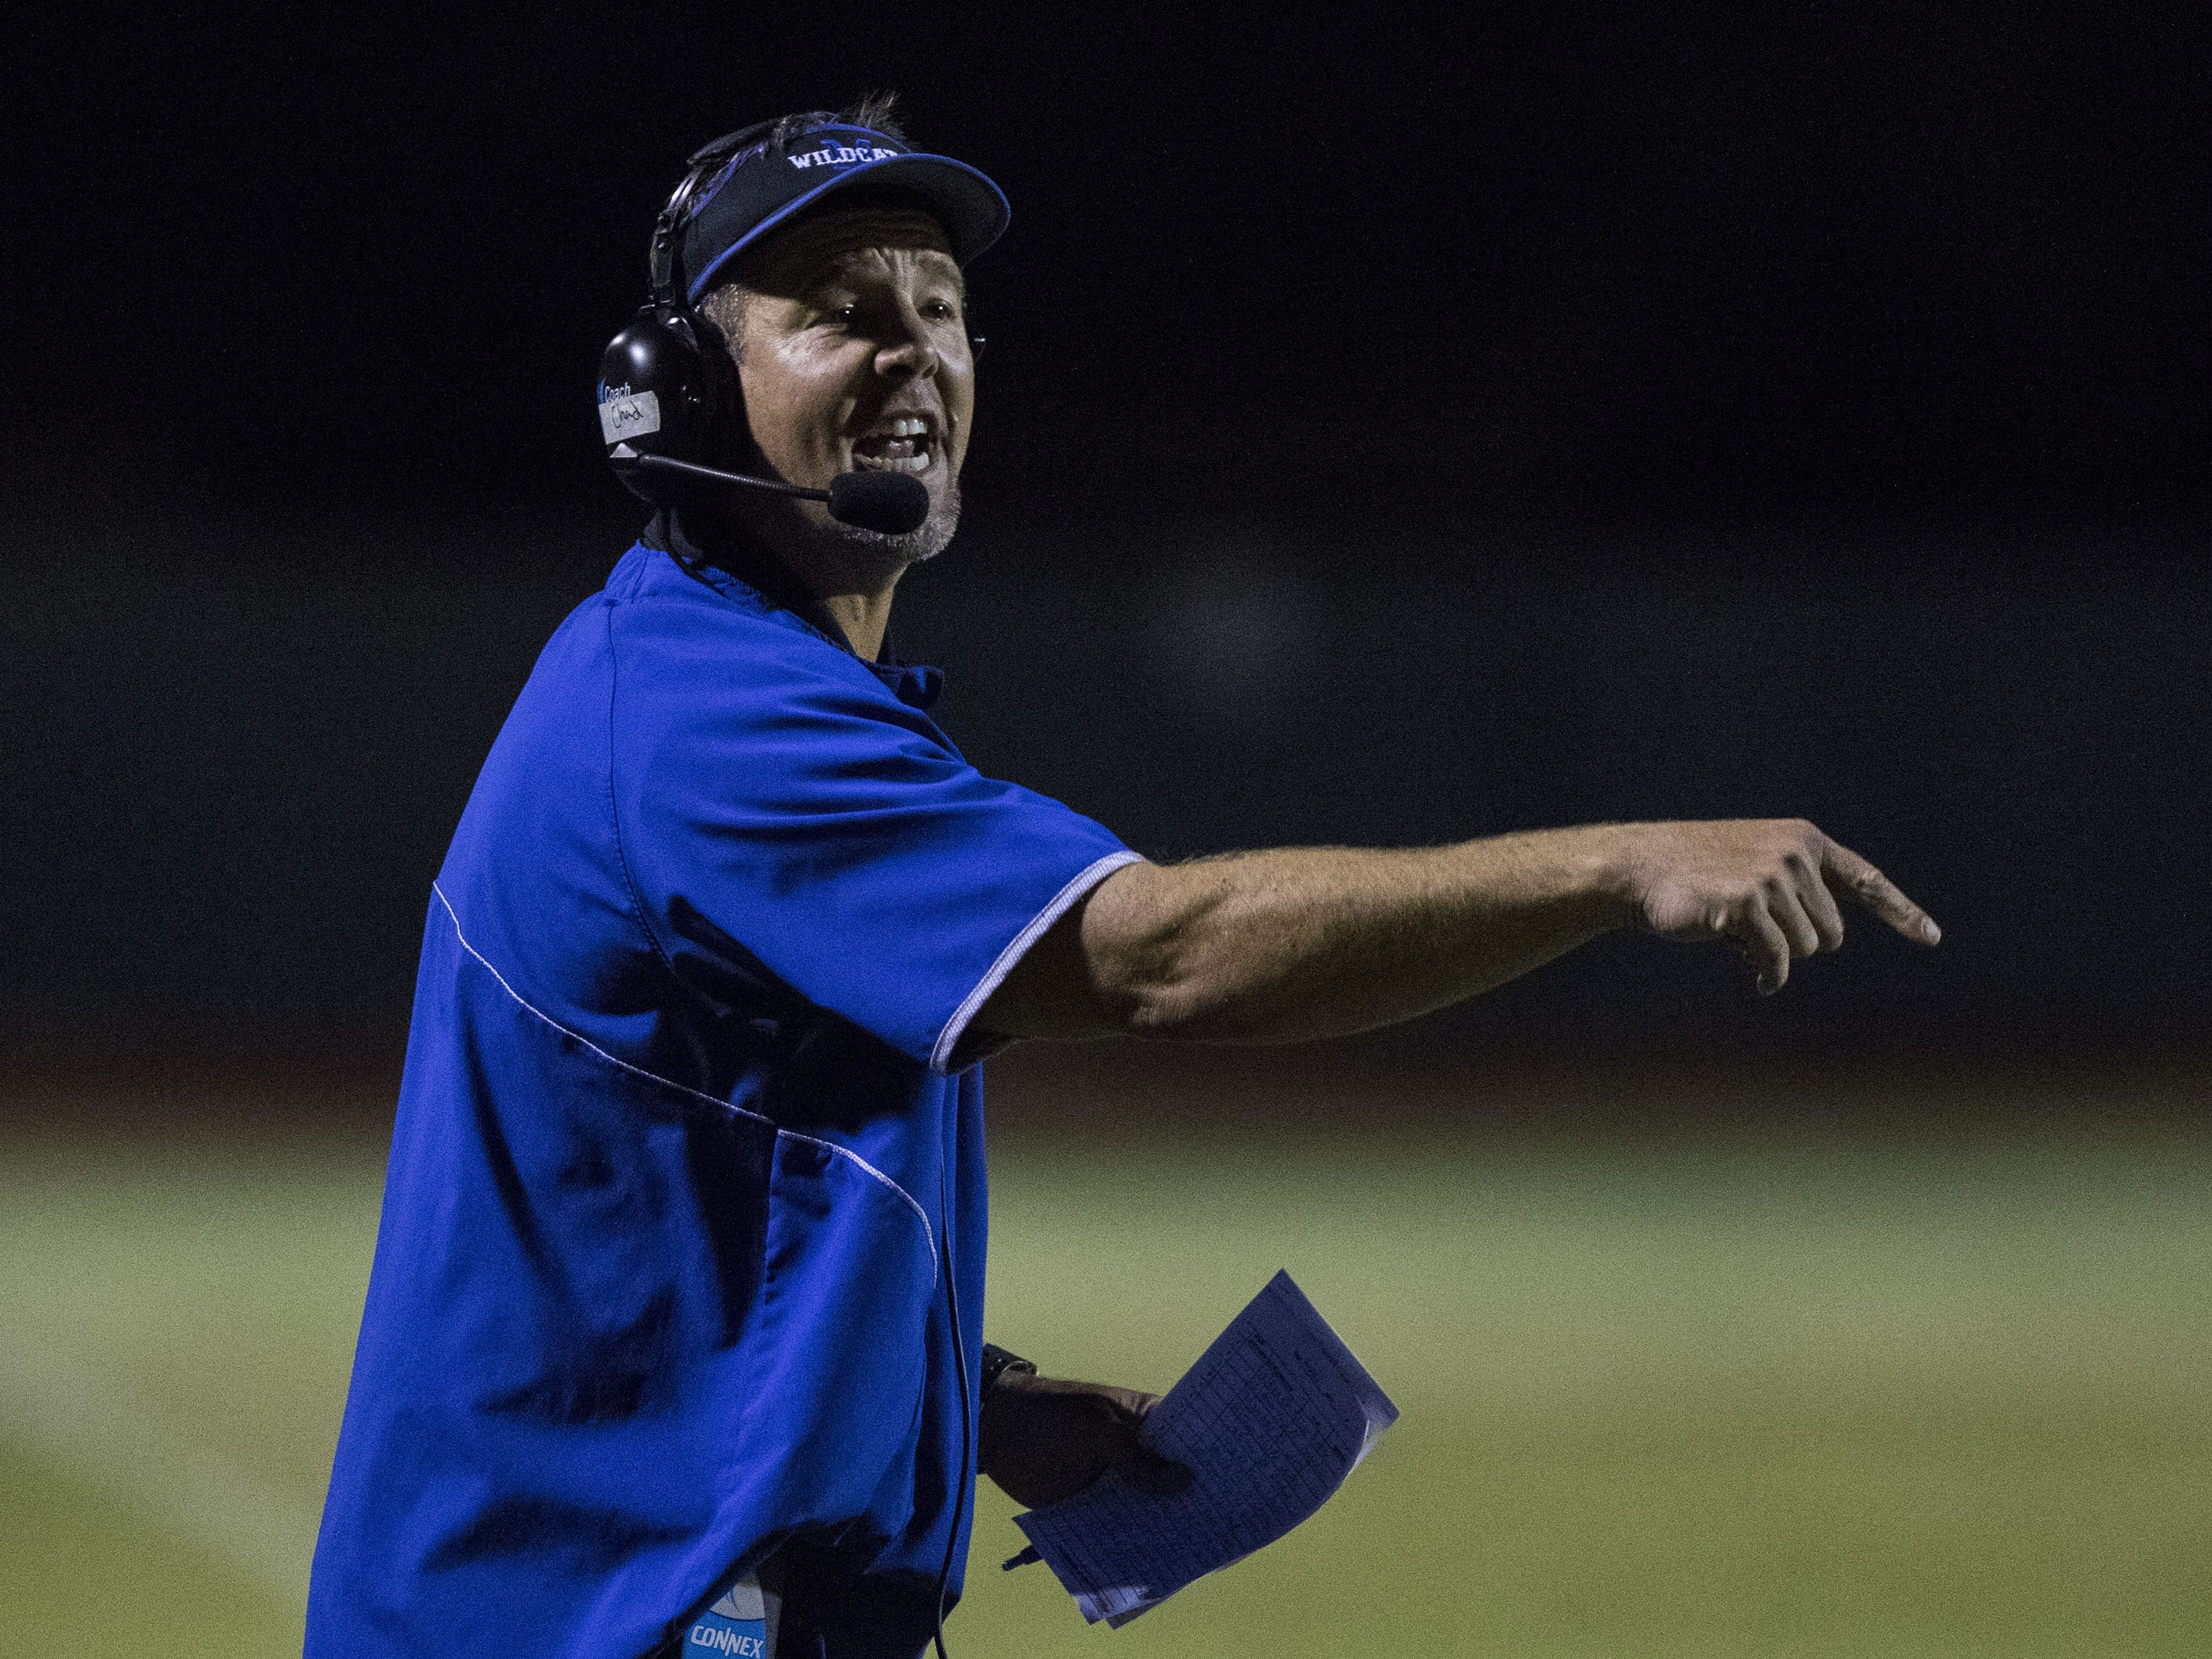 Mesquite coach Chad DeGrenier during their game against Seton in Gilbert Friday, Sept. 21, 2018. #azhsfb